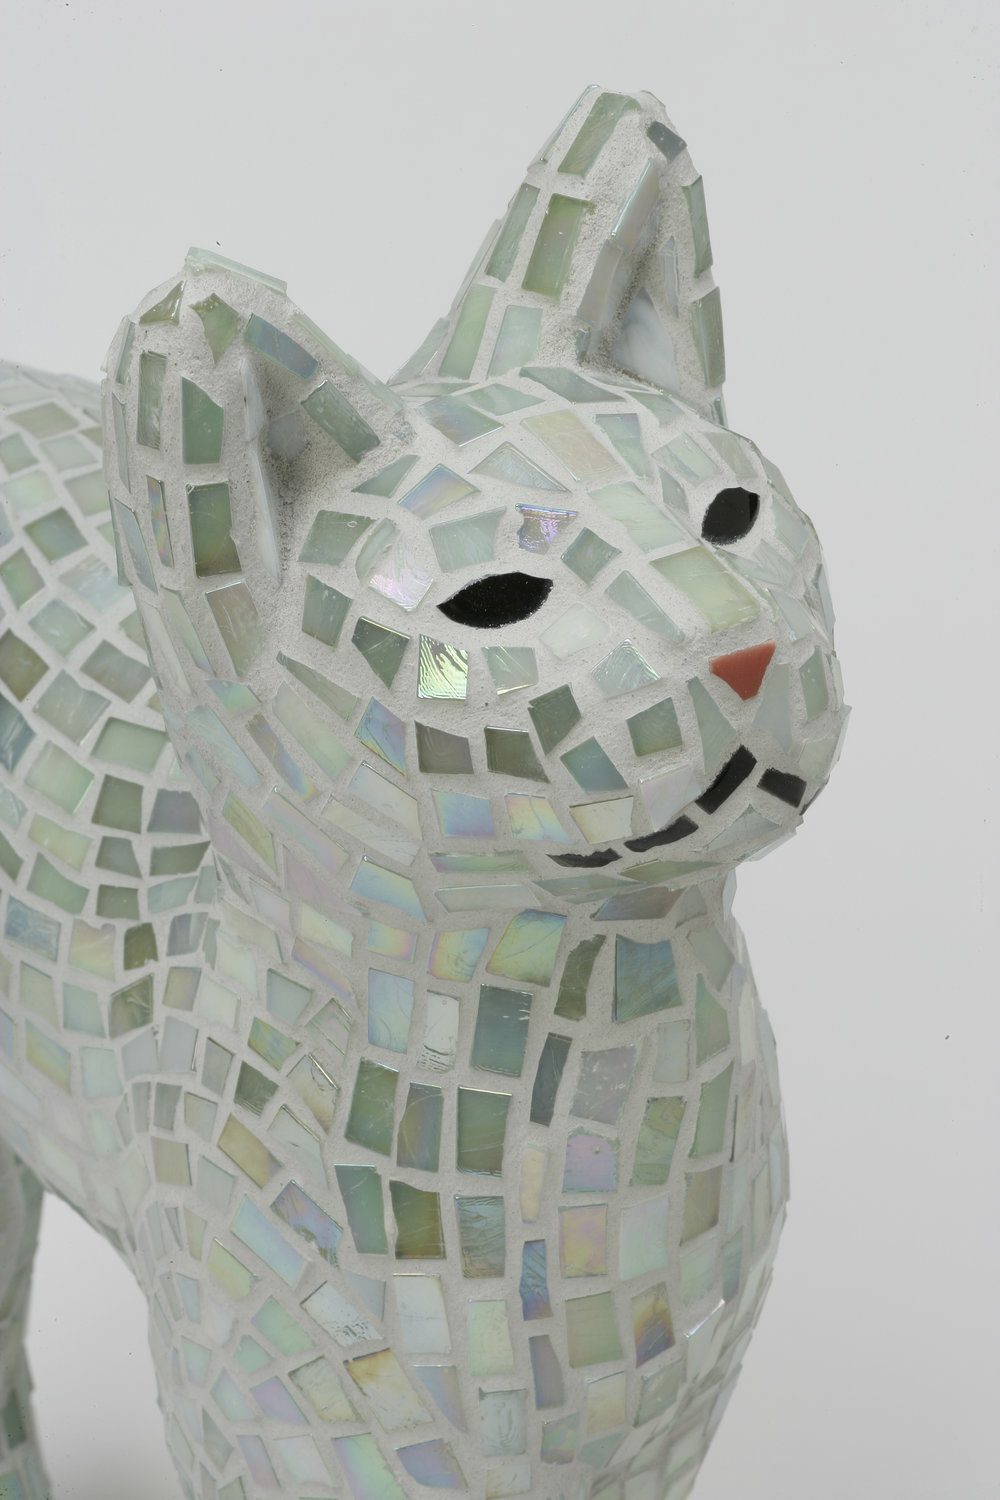 046-Elaine-Summers-Vashon-Mosaic-Art-white-cat.jpg